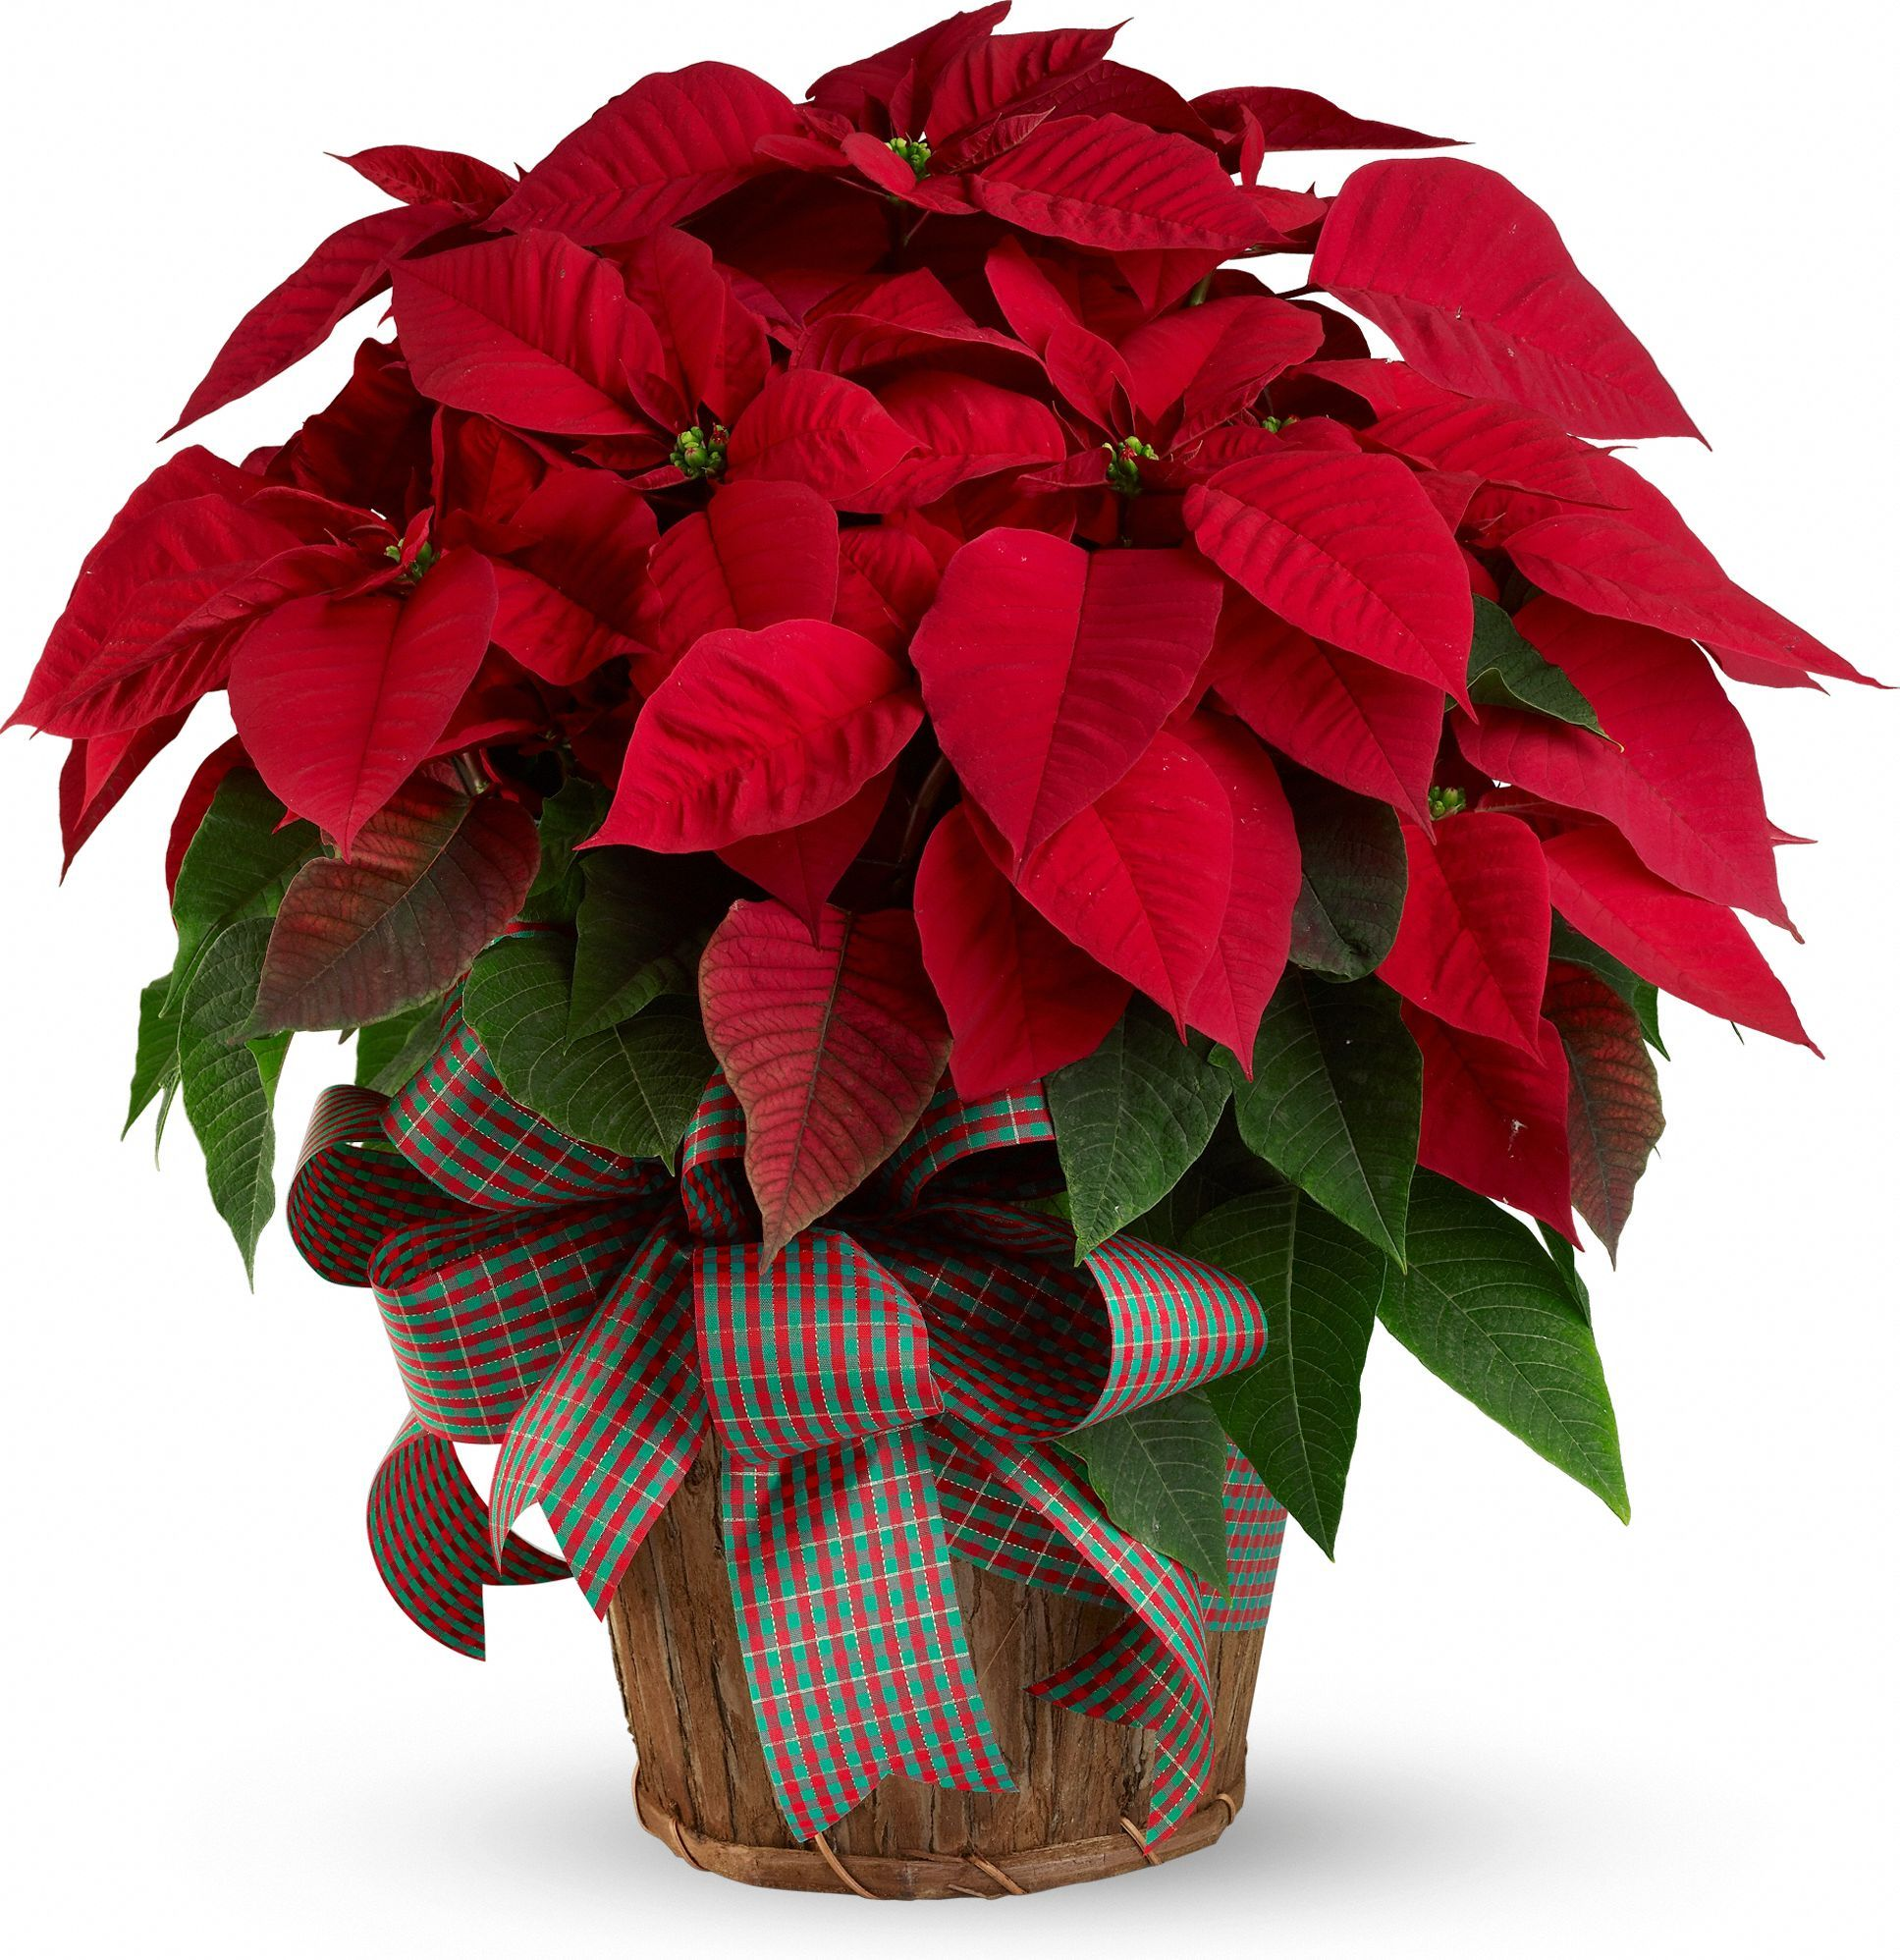 Large Red Poinsettia Christmas Flower Arrangements Poinsettia Plant Christmas Flowers